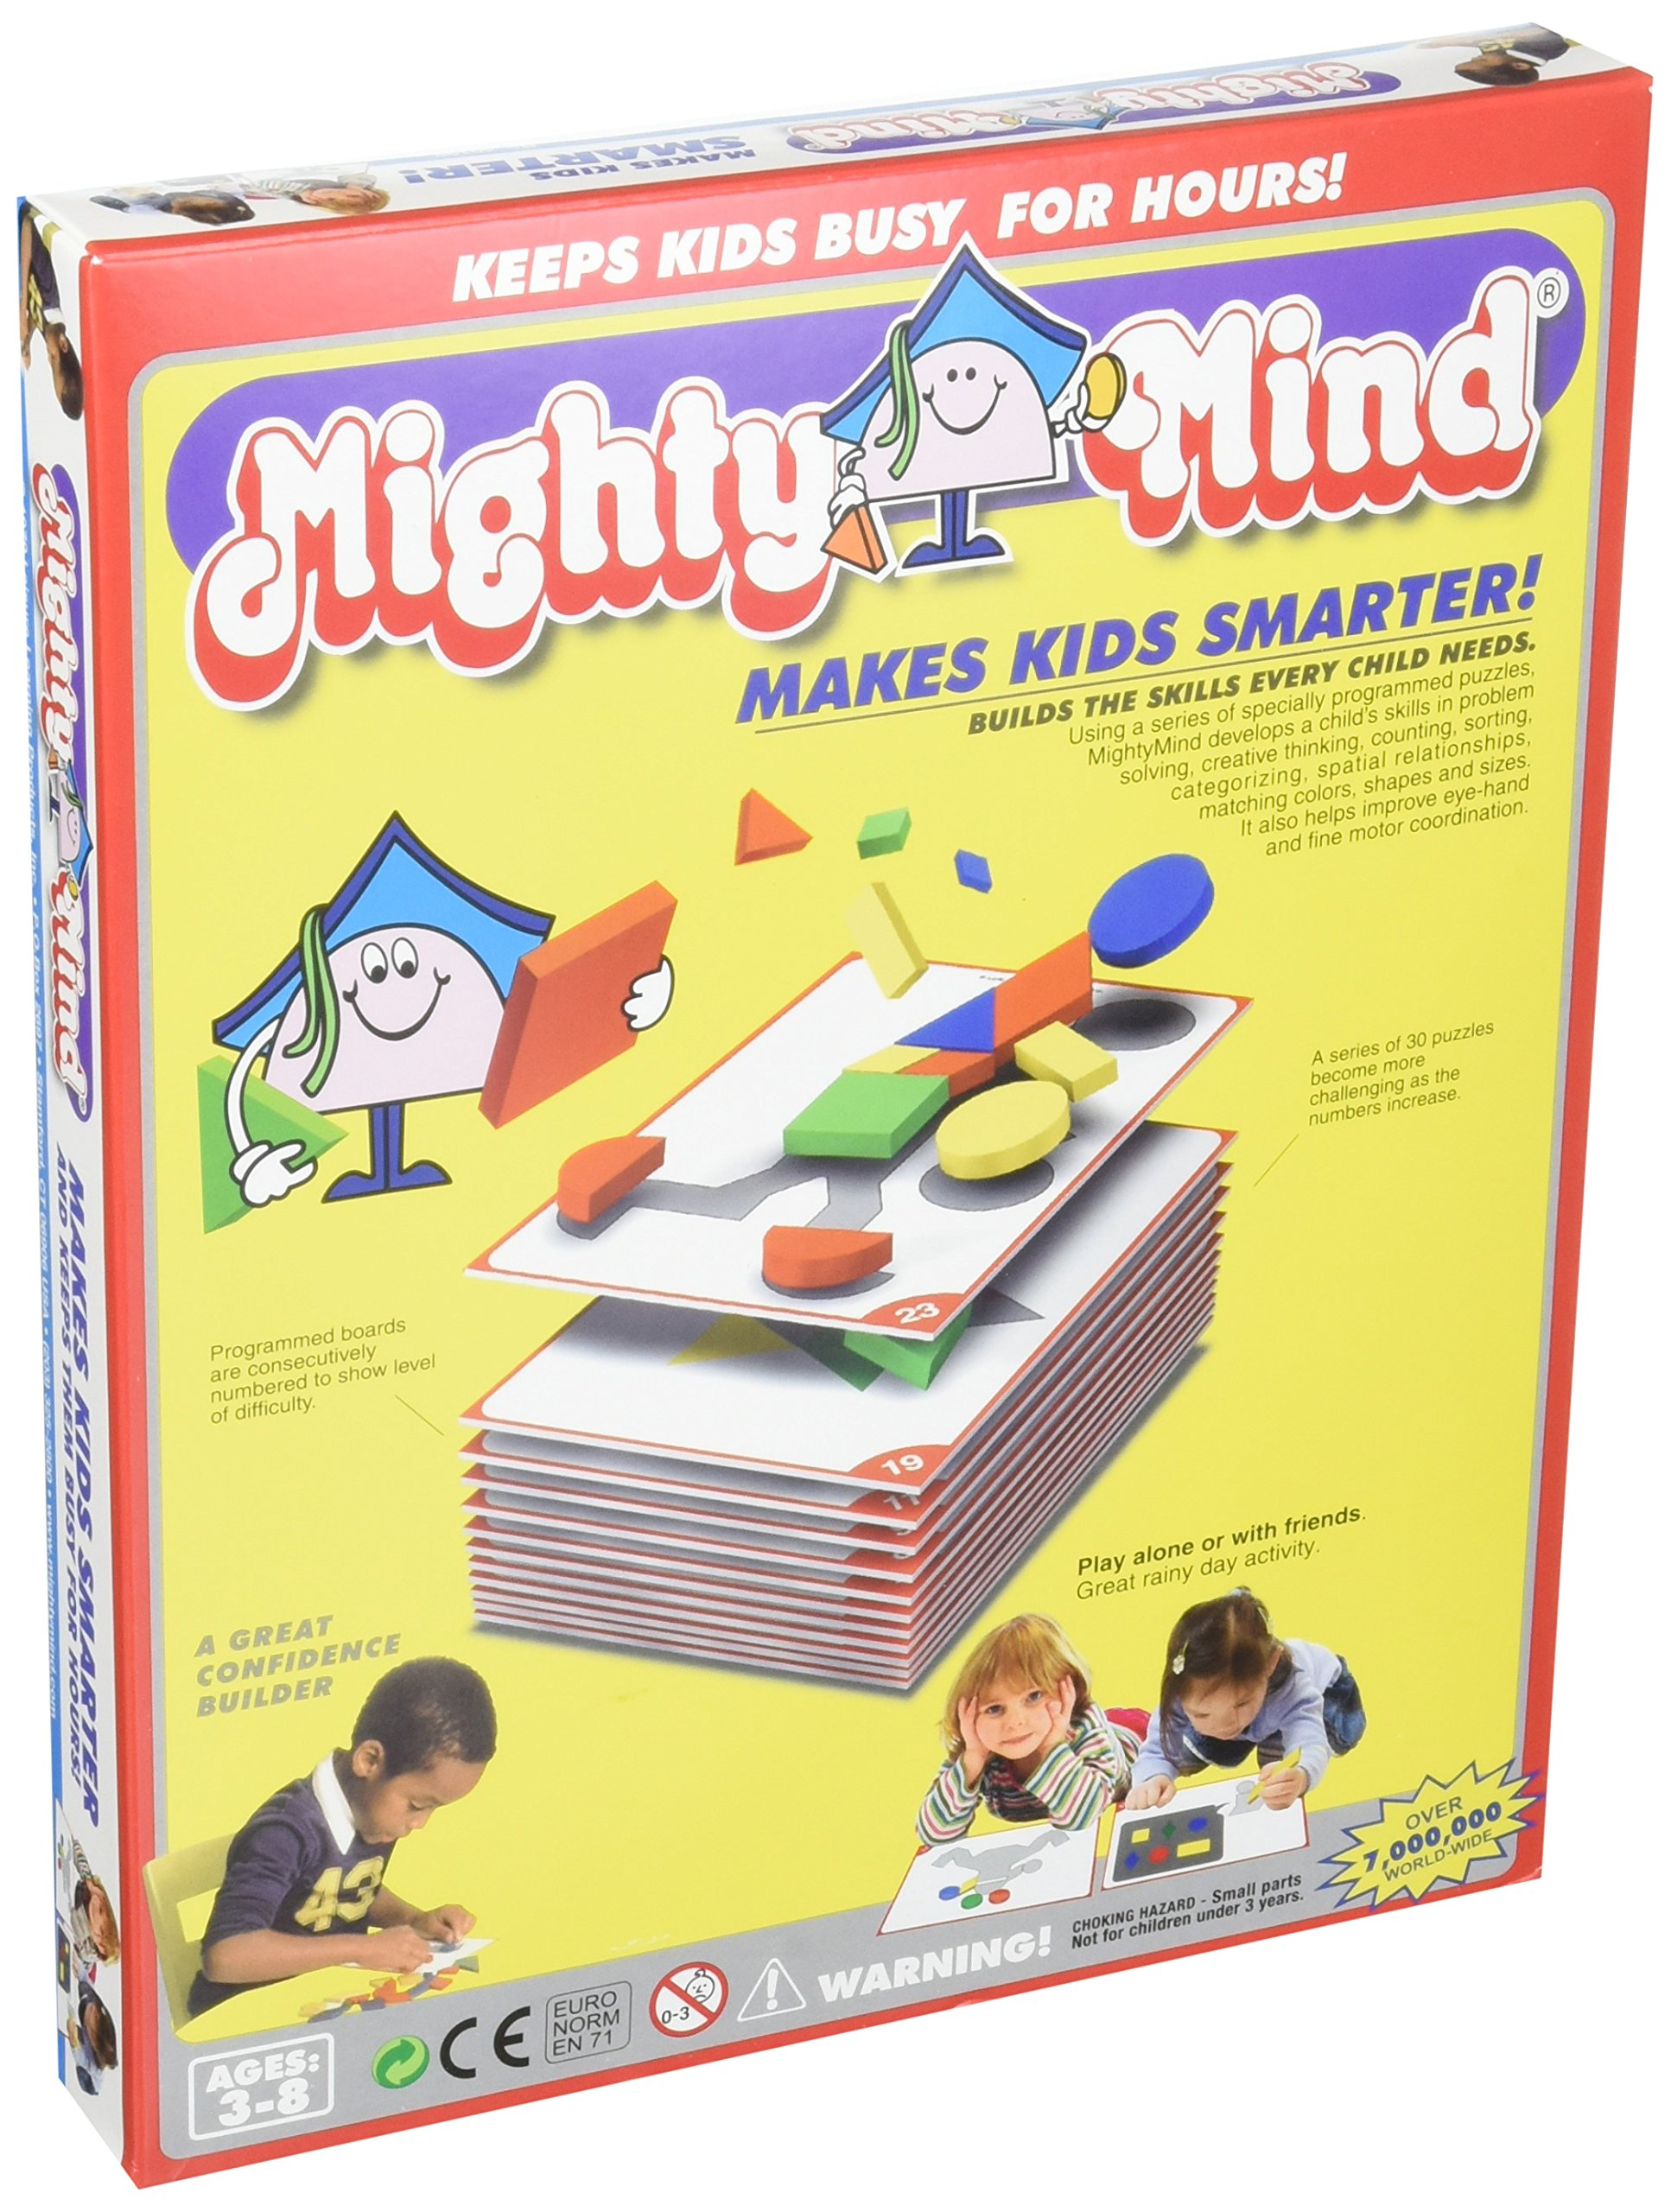 MightyMind Reg.Ed. (Original